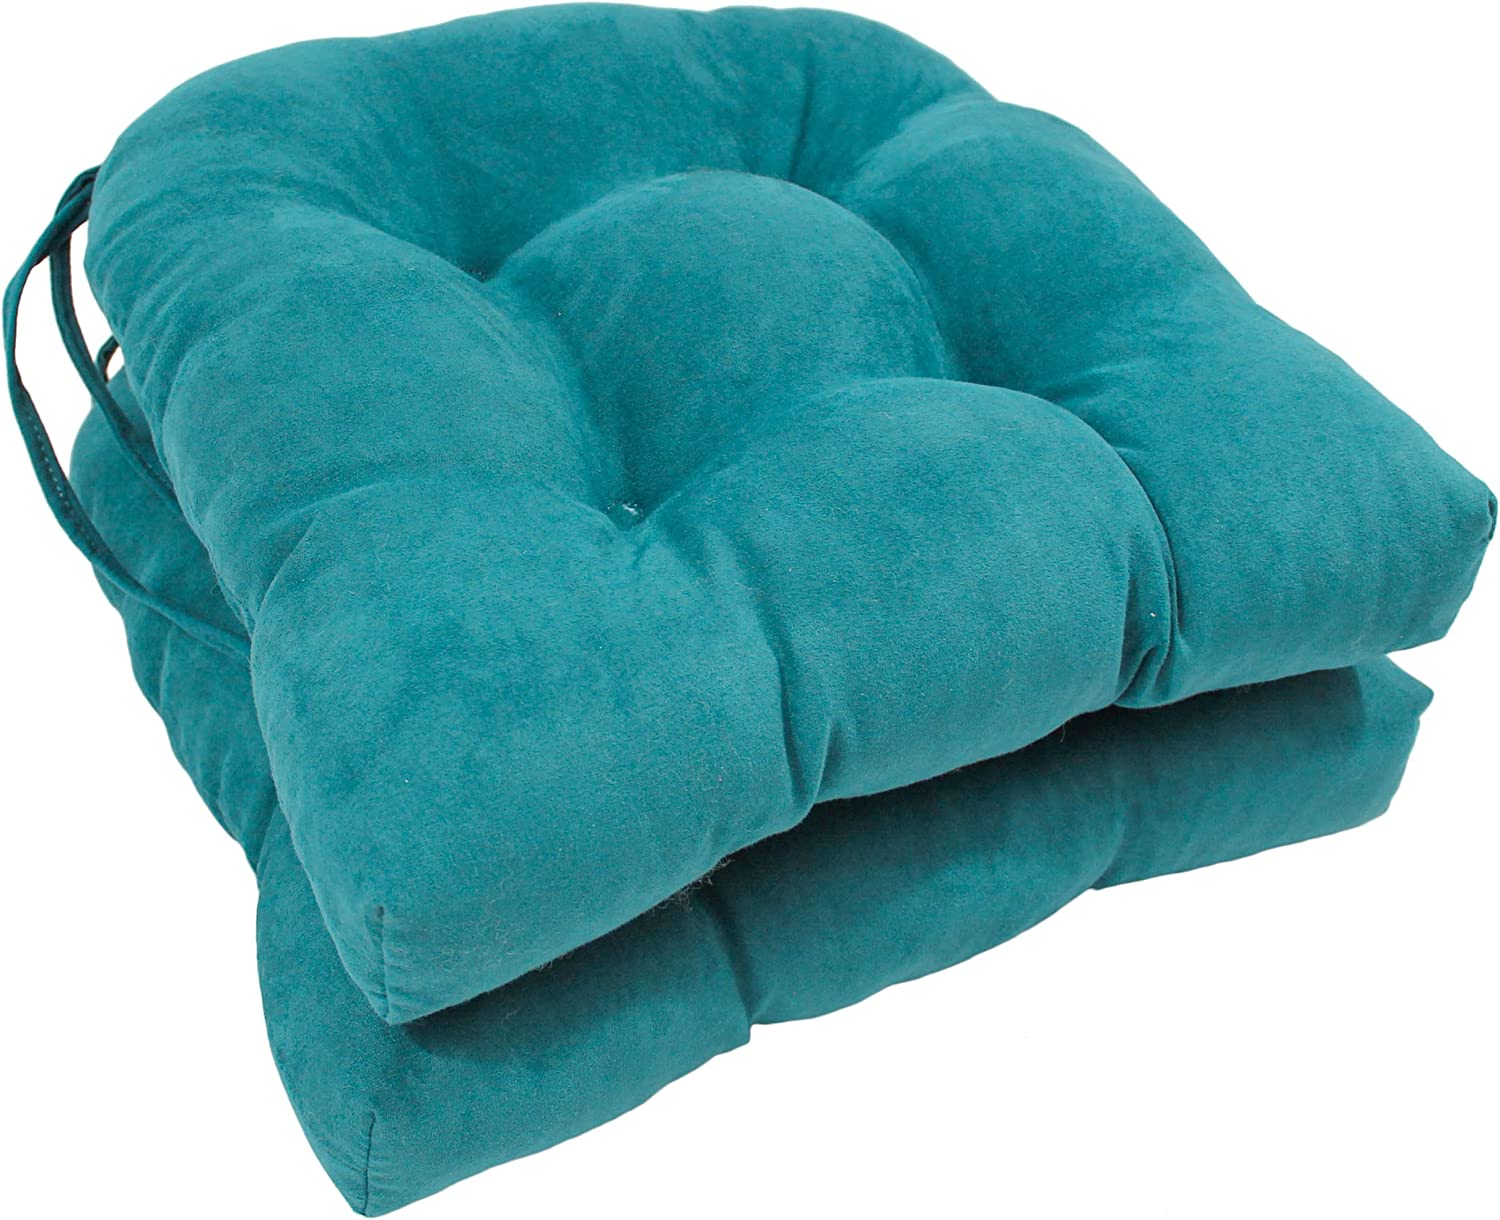 Blazing Needles Solid Microsuede U-Shaped Tufted Chair Cushions Set of 2 , 16 , Aqua Blue